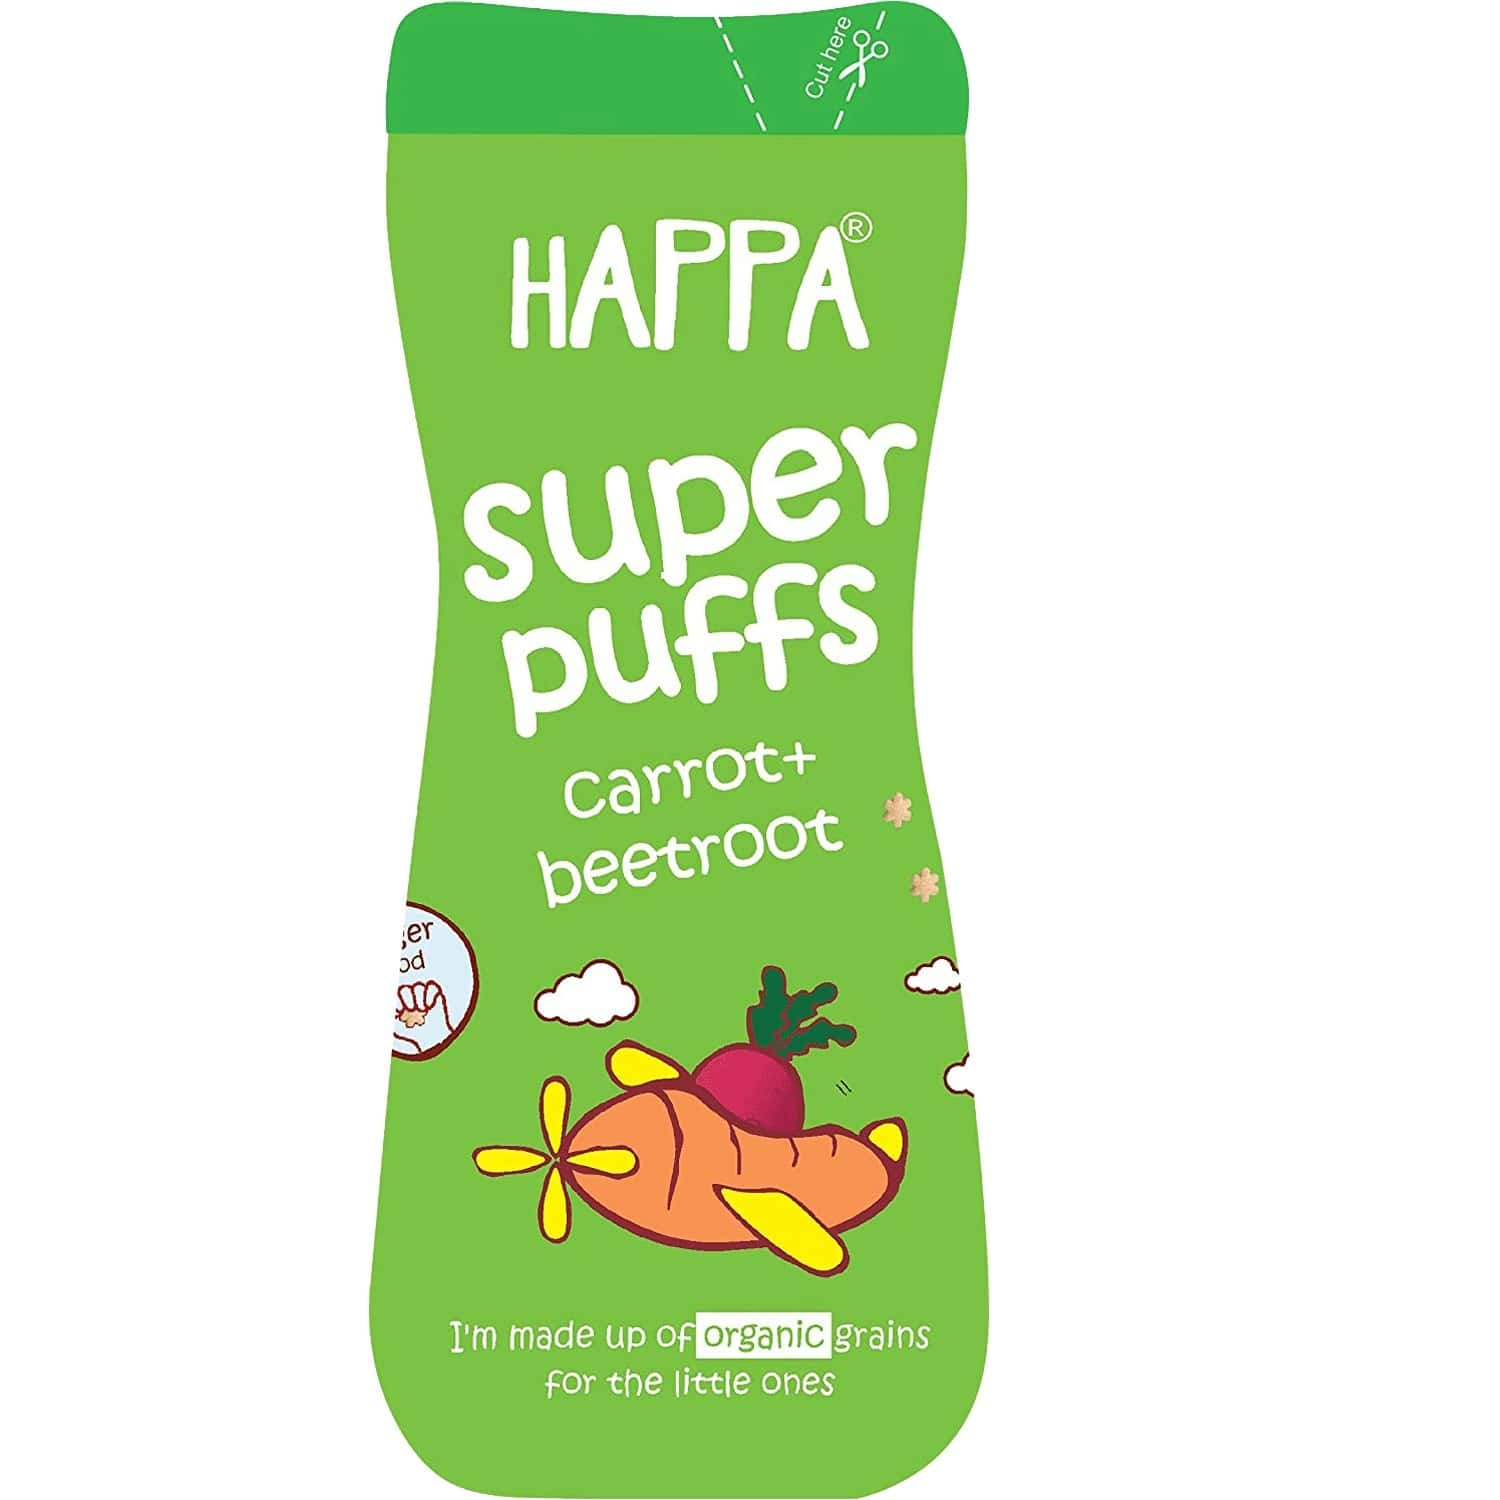 Happa Organic Baby Food Multigrain Carrot Beetroot Puffs Melts Super Puffs 8 Months+ Puree,pack Of 1